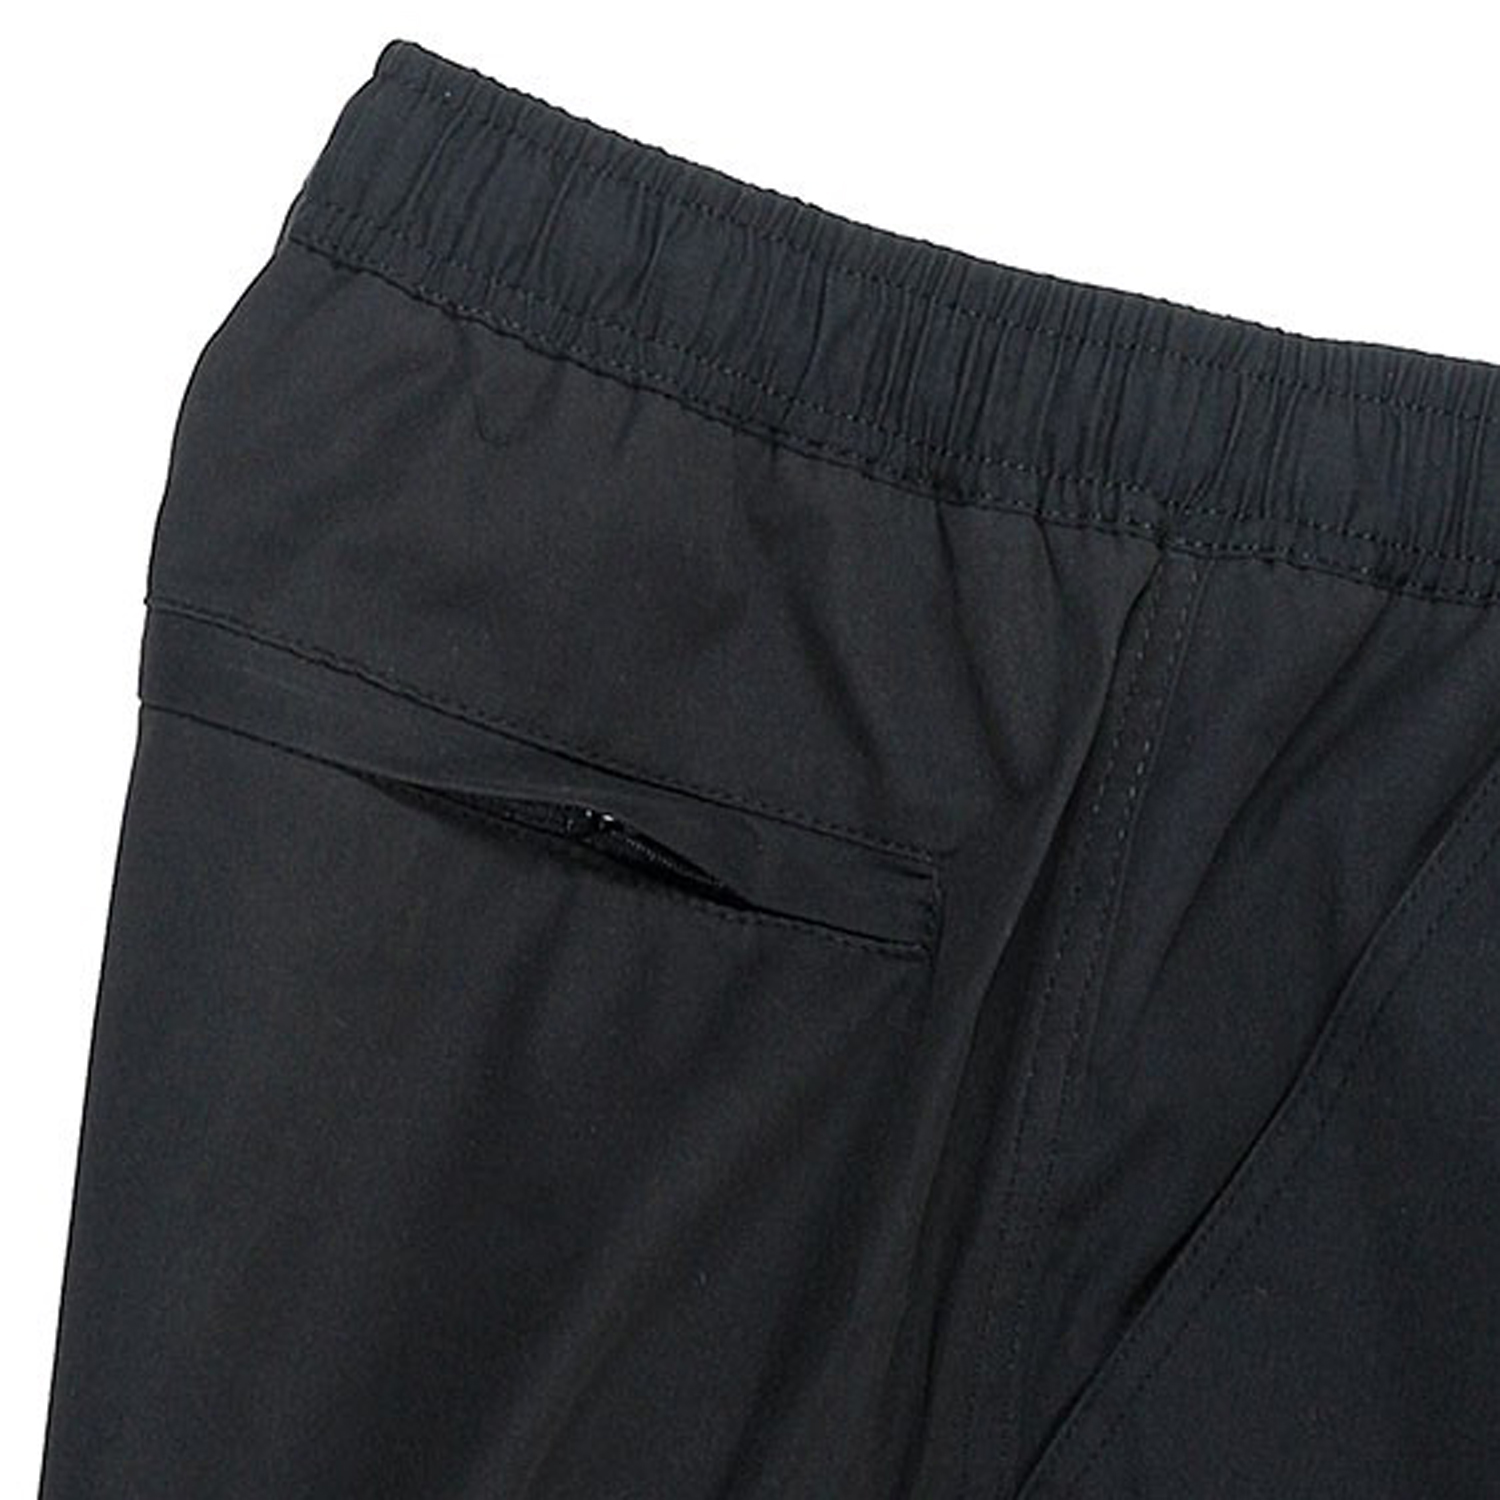 Detail Image to Shorts in black by Abraxas up to oversize 10XL